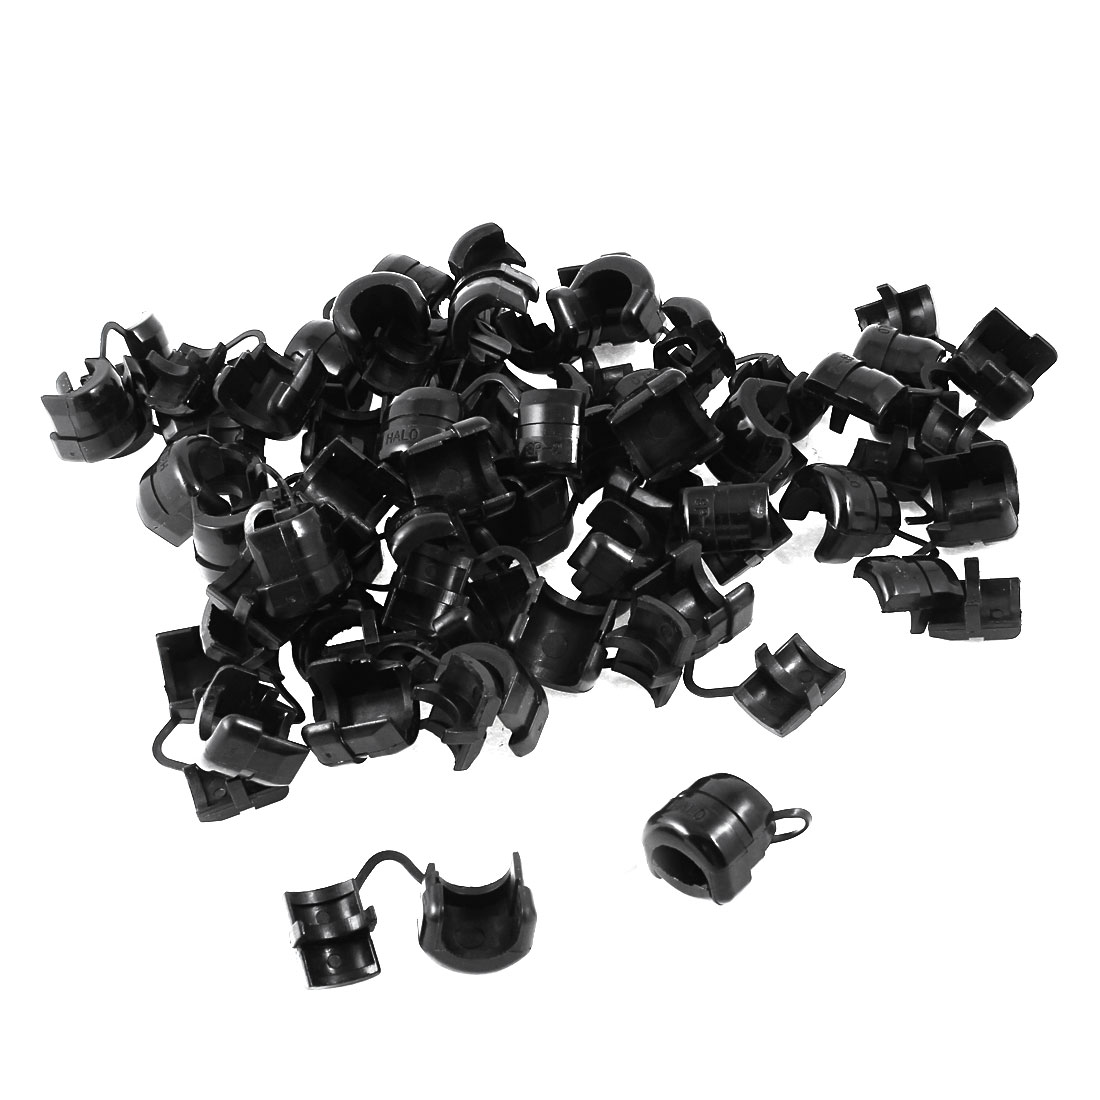 50 X Electrical Equipment Nylon Strain Relief Bushing For 13mm Dia